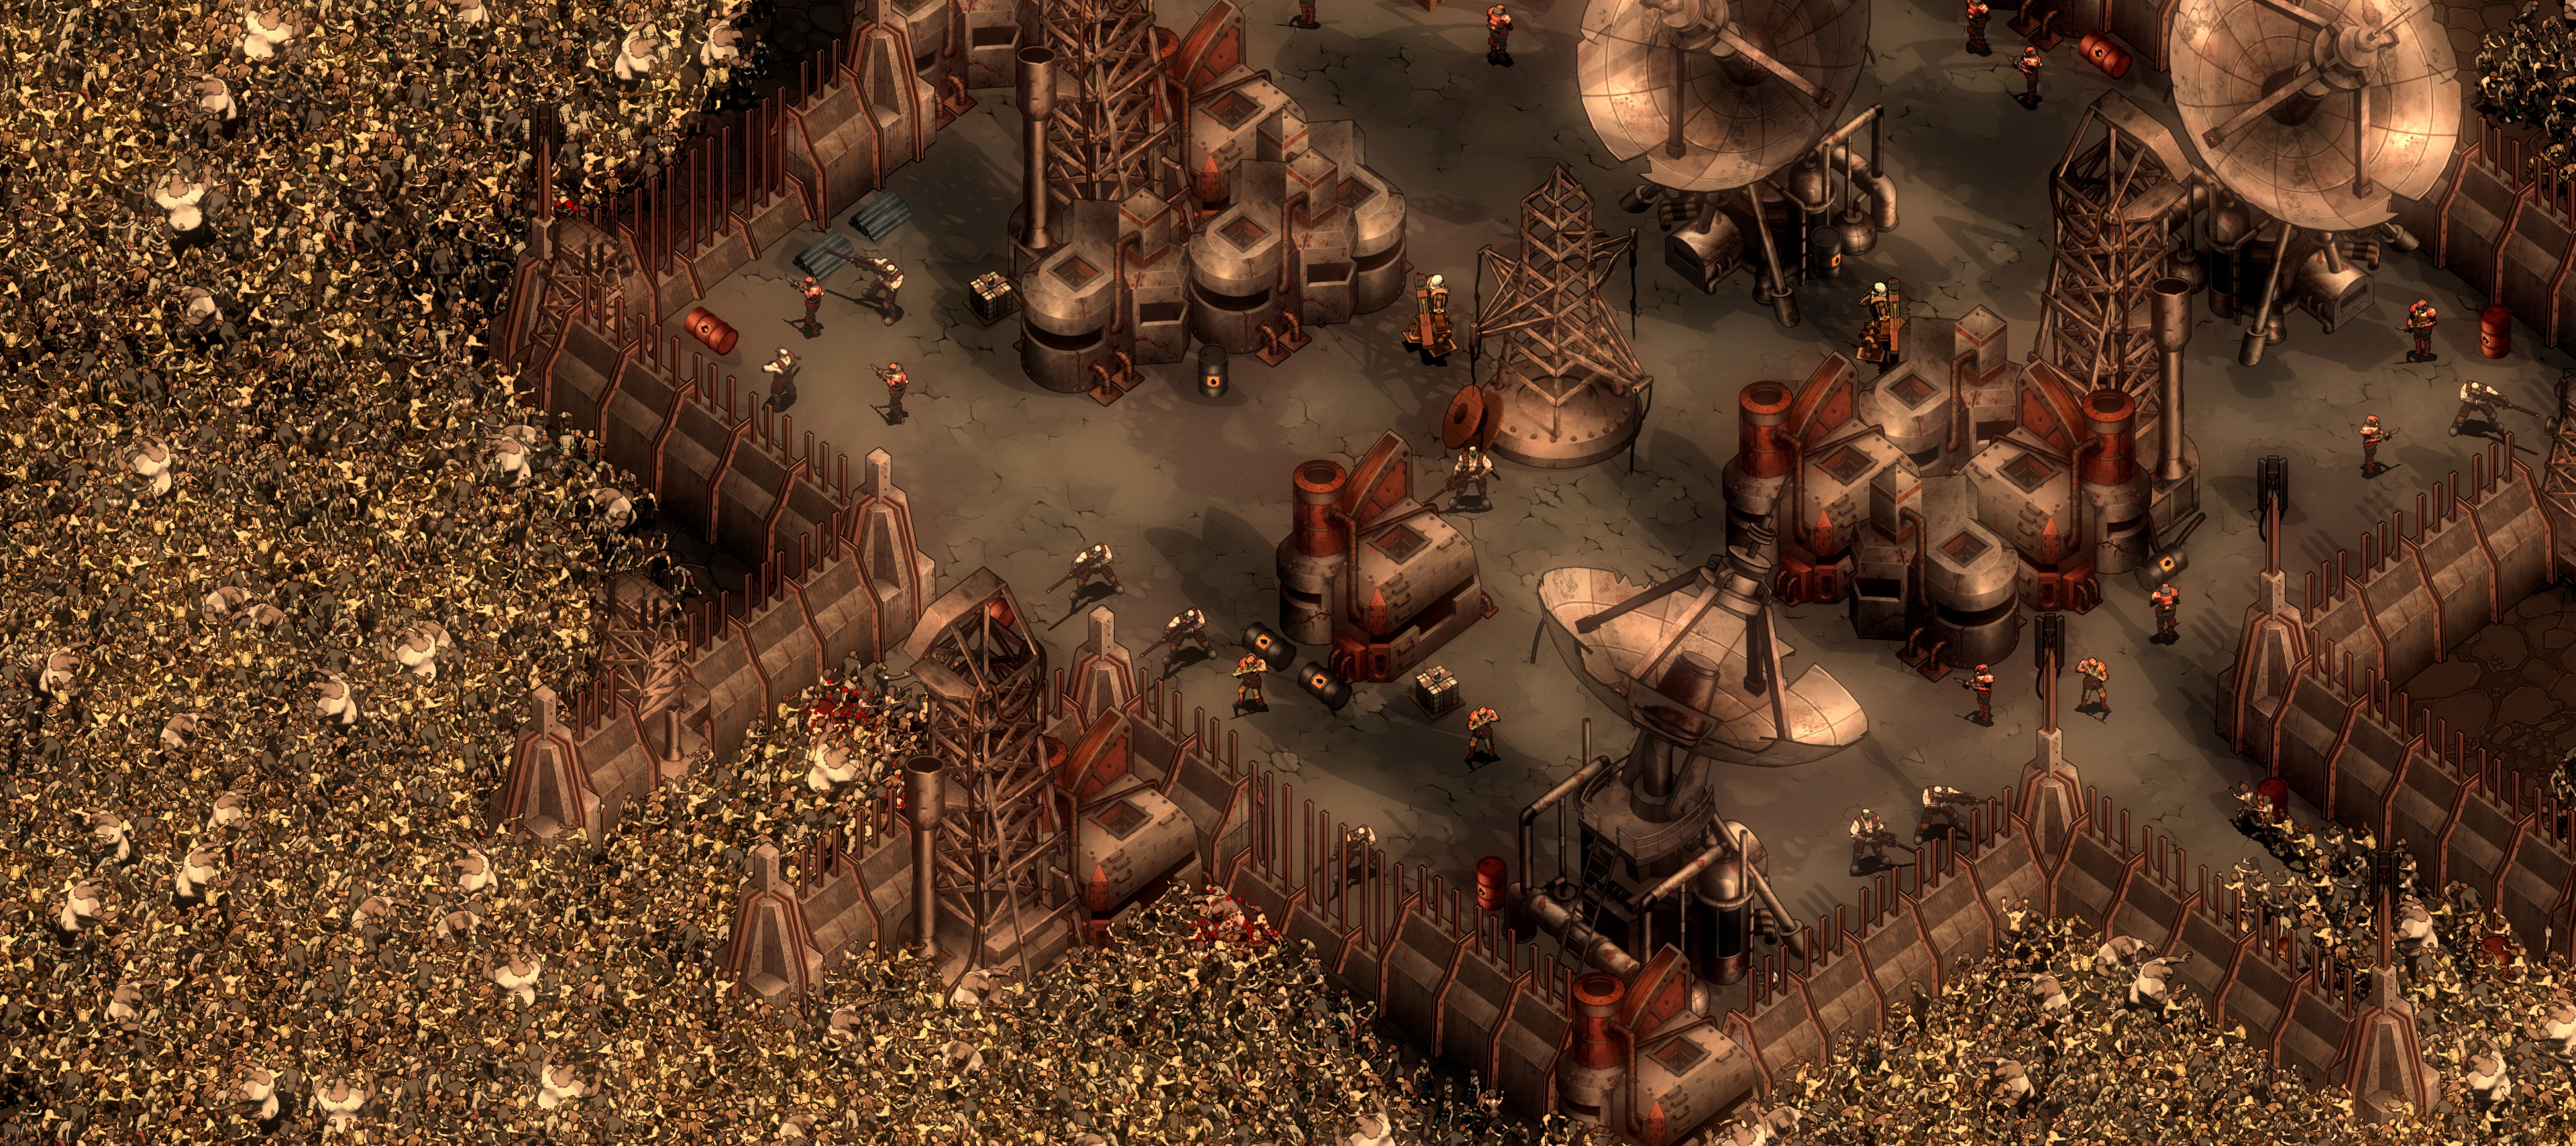 They Are Billions Update: The Old Human Fortresses | Numantian Games